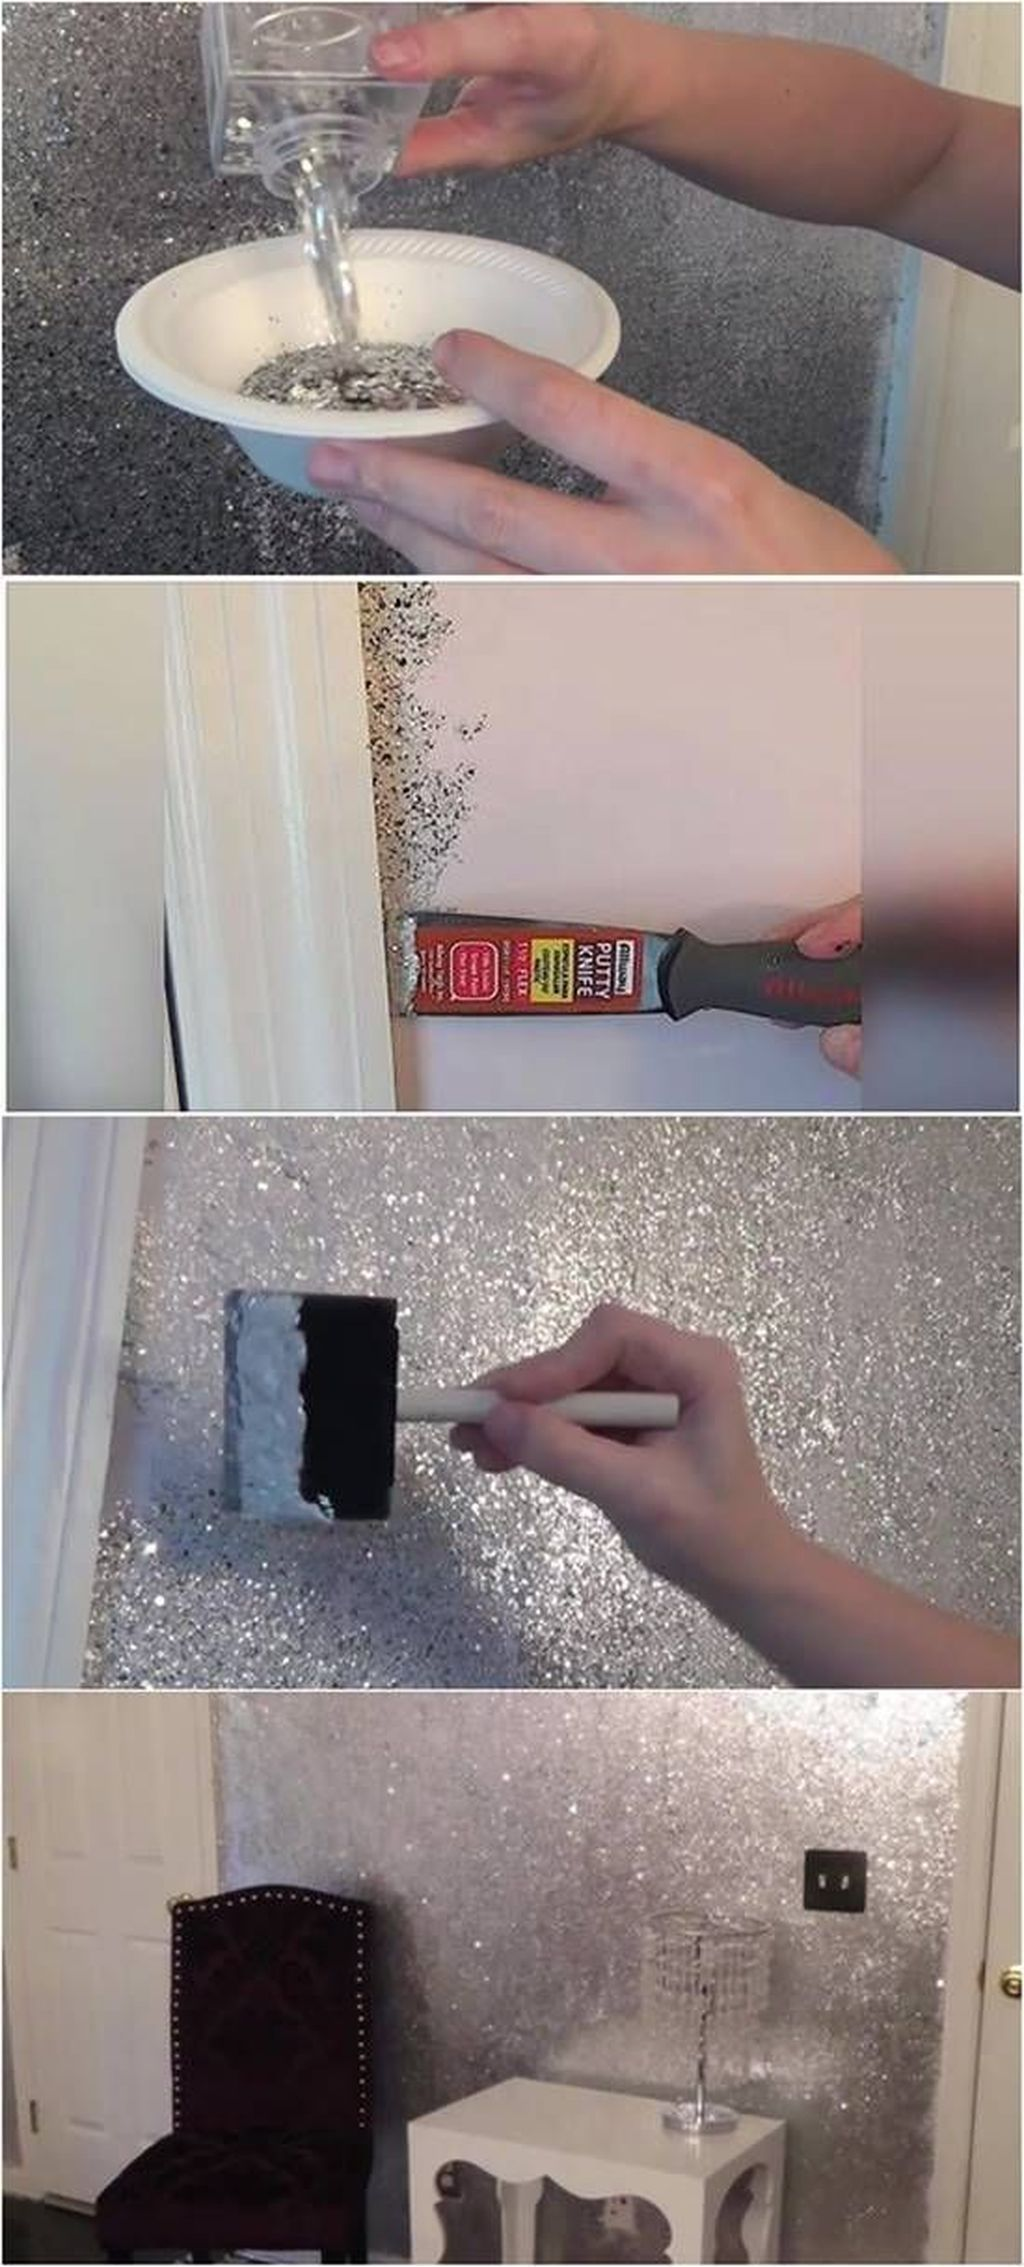 Glitter grout ready mixed wall floor mosaic cheap tiles showers glitter grout ready mixed wall floor mosaic cheap tiles showers wetroom bathroom glitter grout tiled showers and cheap tiles dailygadgetfo Gallery